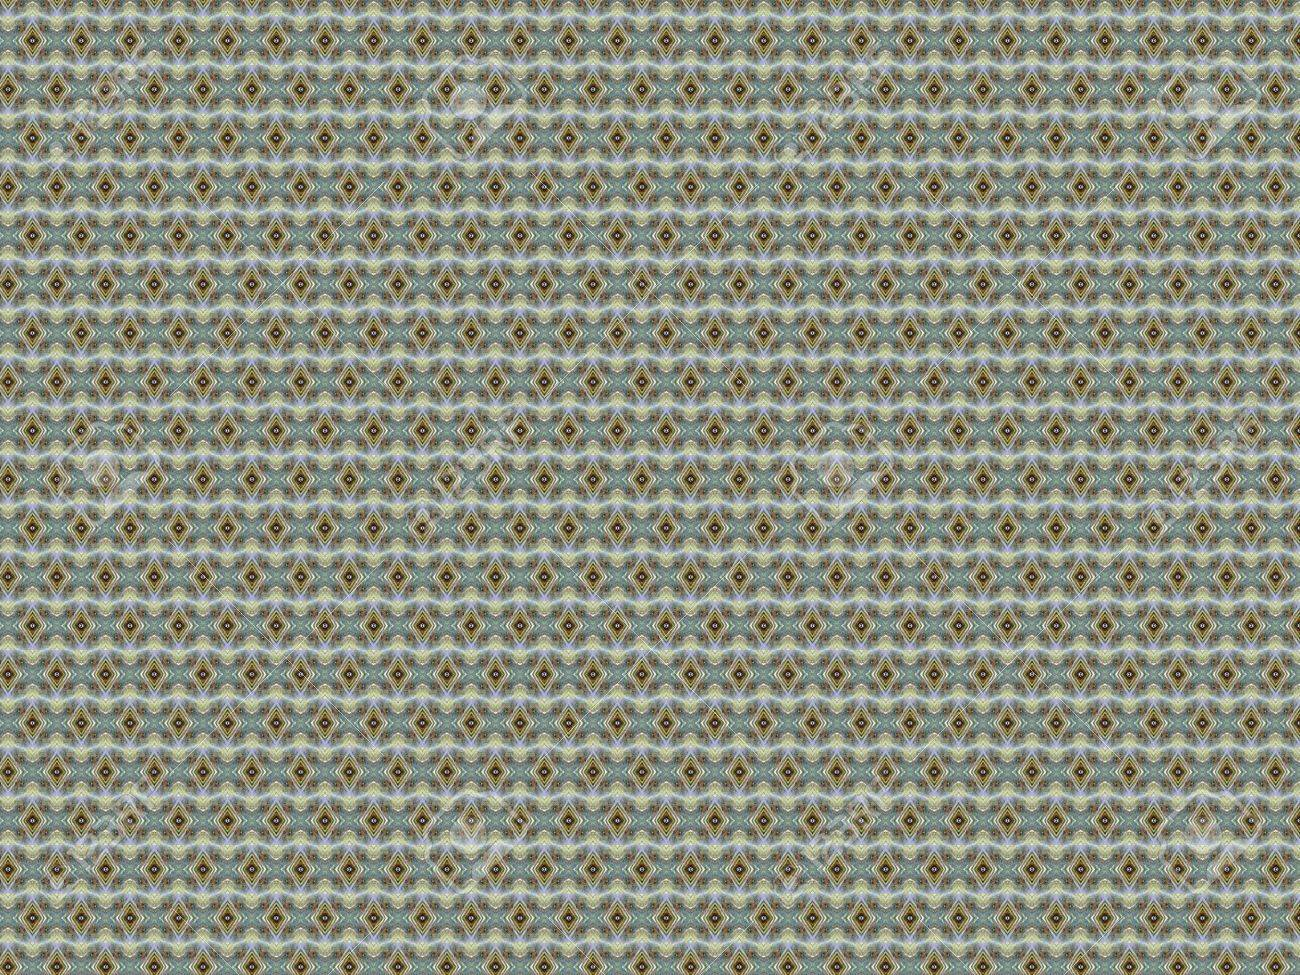 Vintage shabby background with classy patterns  Geometric or floral pattern on paper texture in grunge style Stock Photo - 17174656